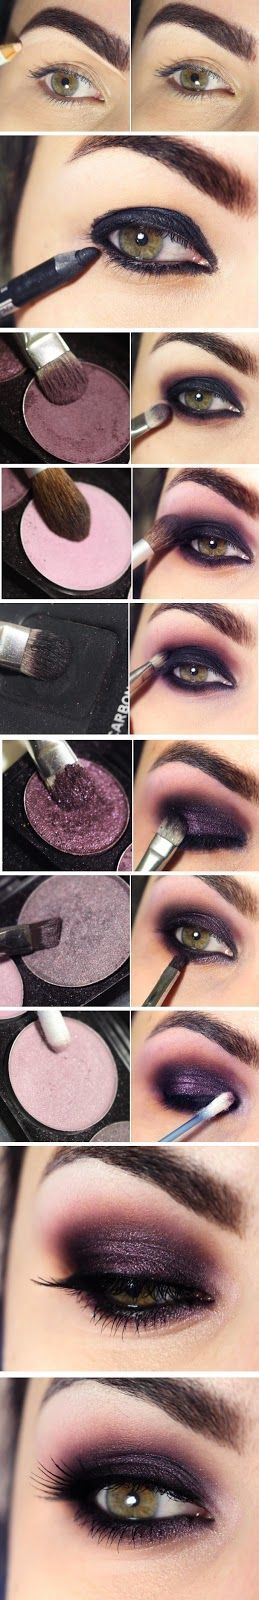 Best Beauty Tips and Makeup Ideas - Gorgeous Smokey Eyes Makeup Tutorials With Purple Shade / Best LoLus Makeup Fashion